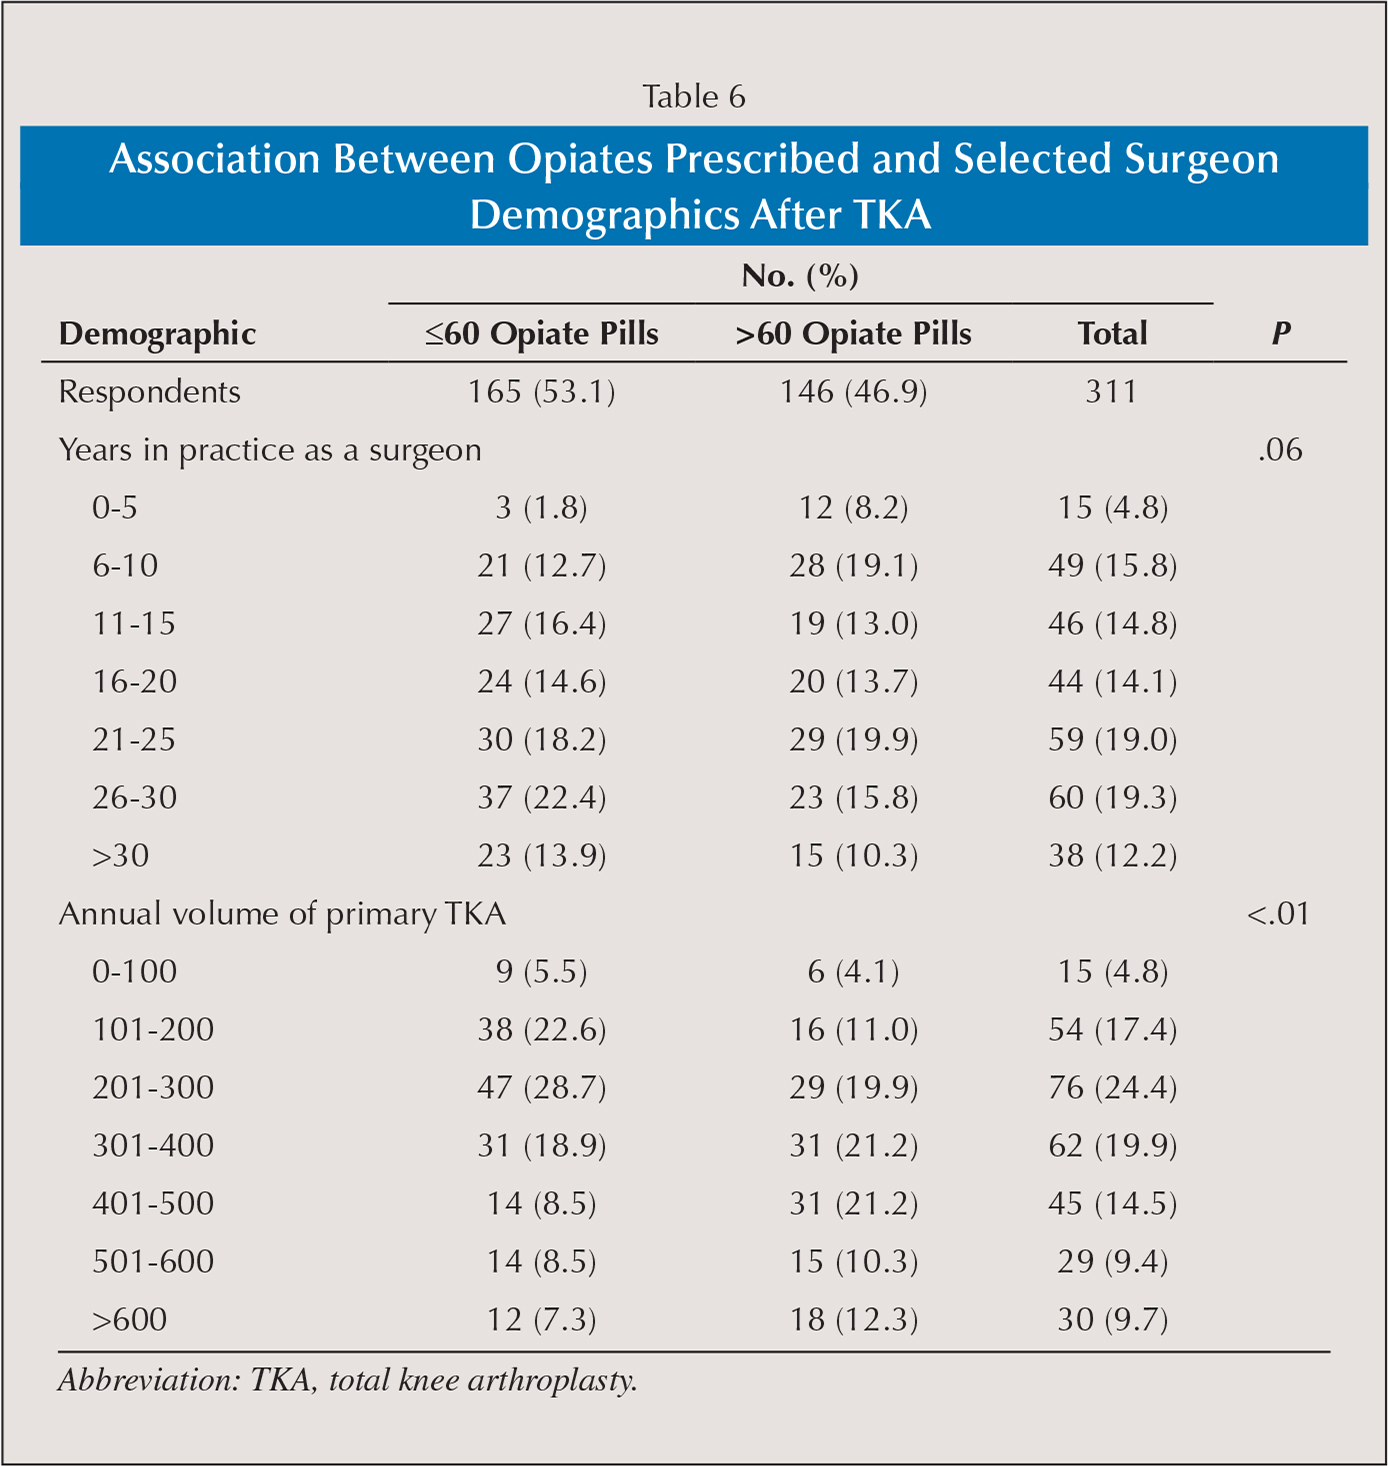 Association Between Opiates Prescribed and Selected Surgeon Demographics After TKA